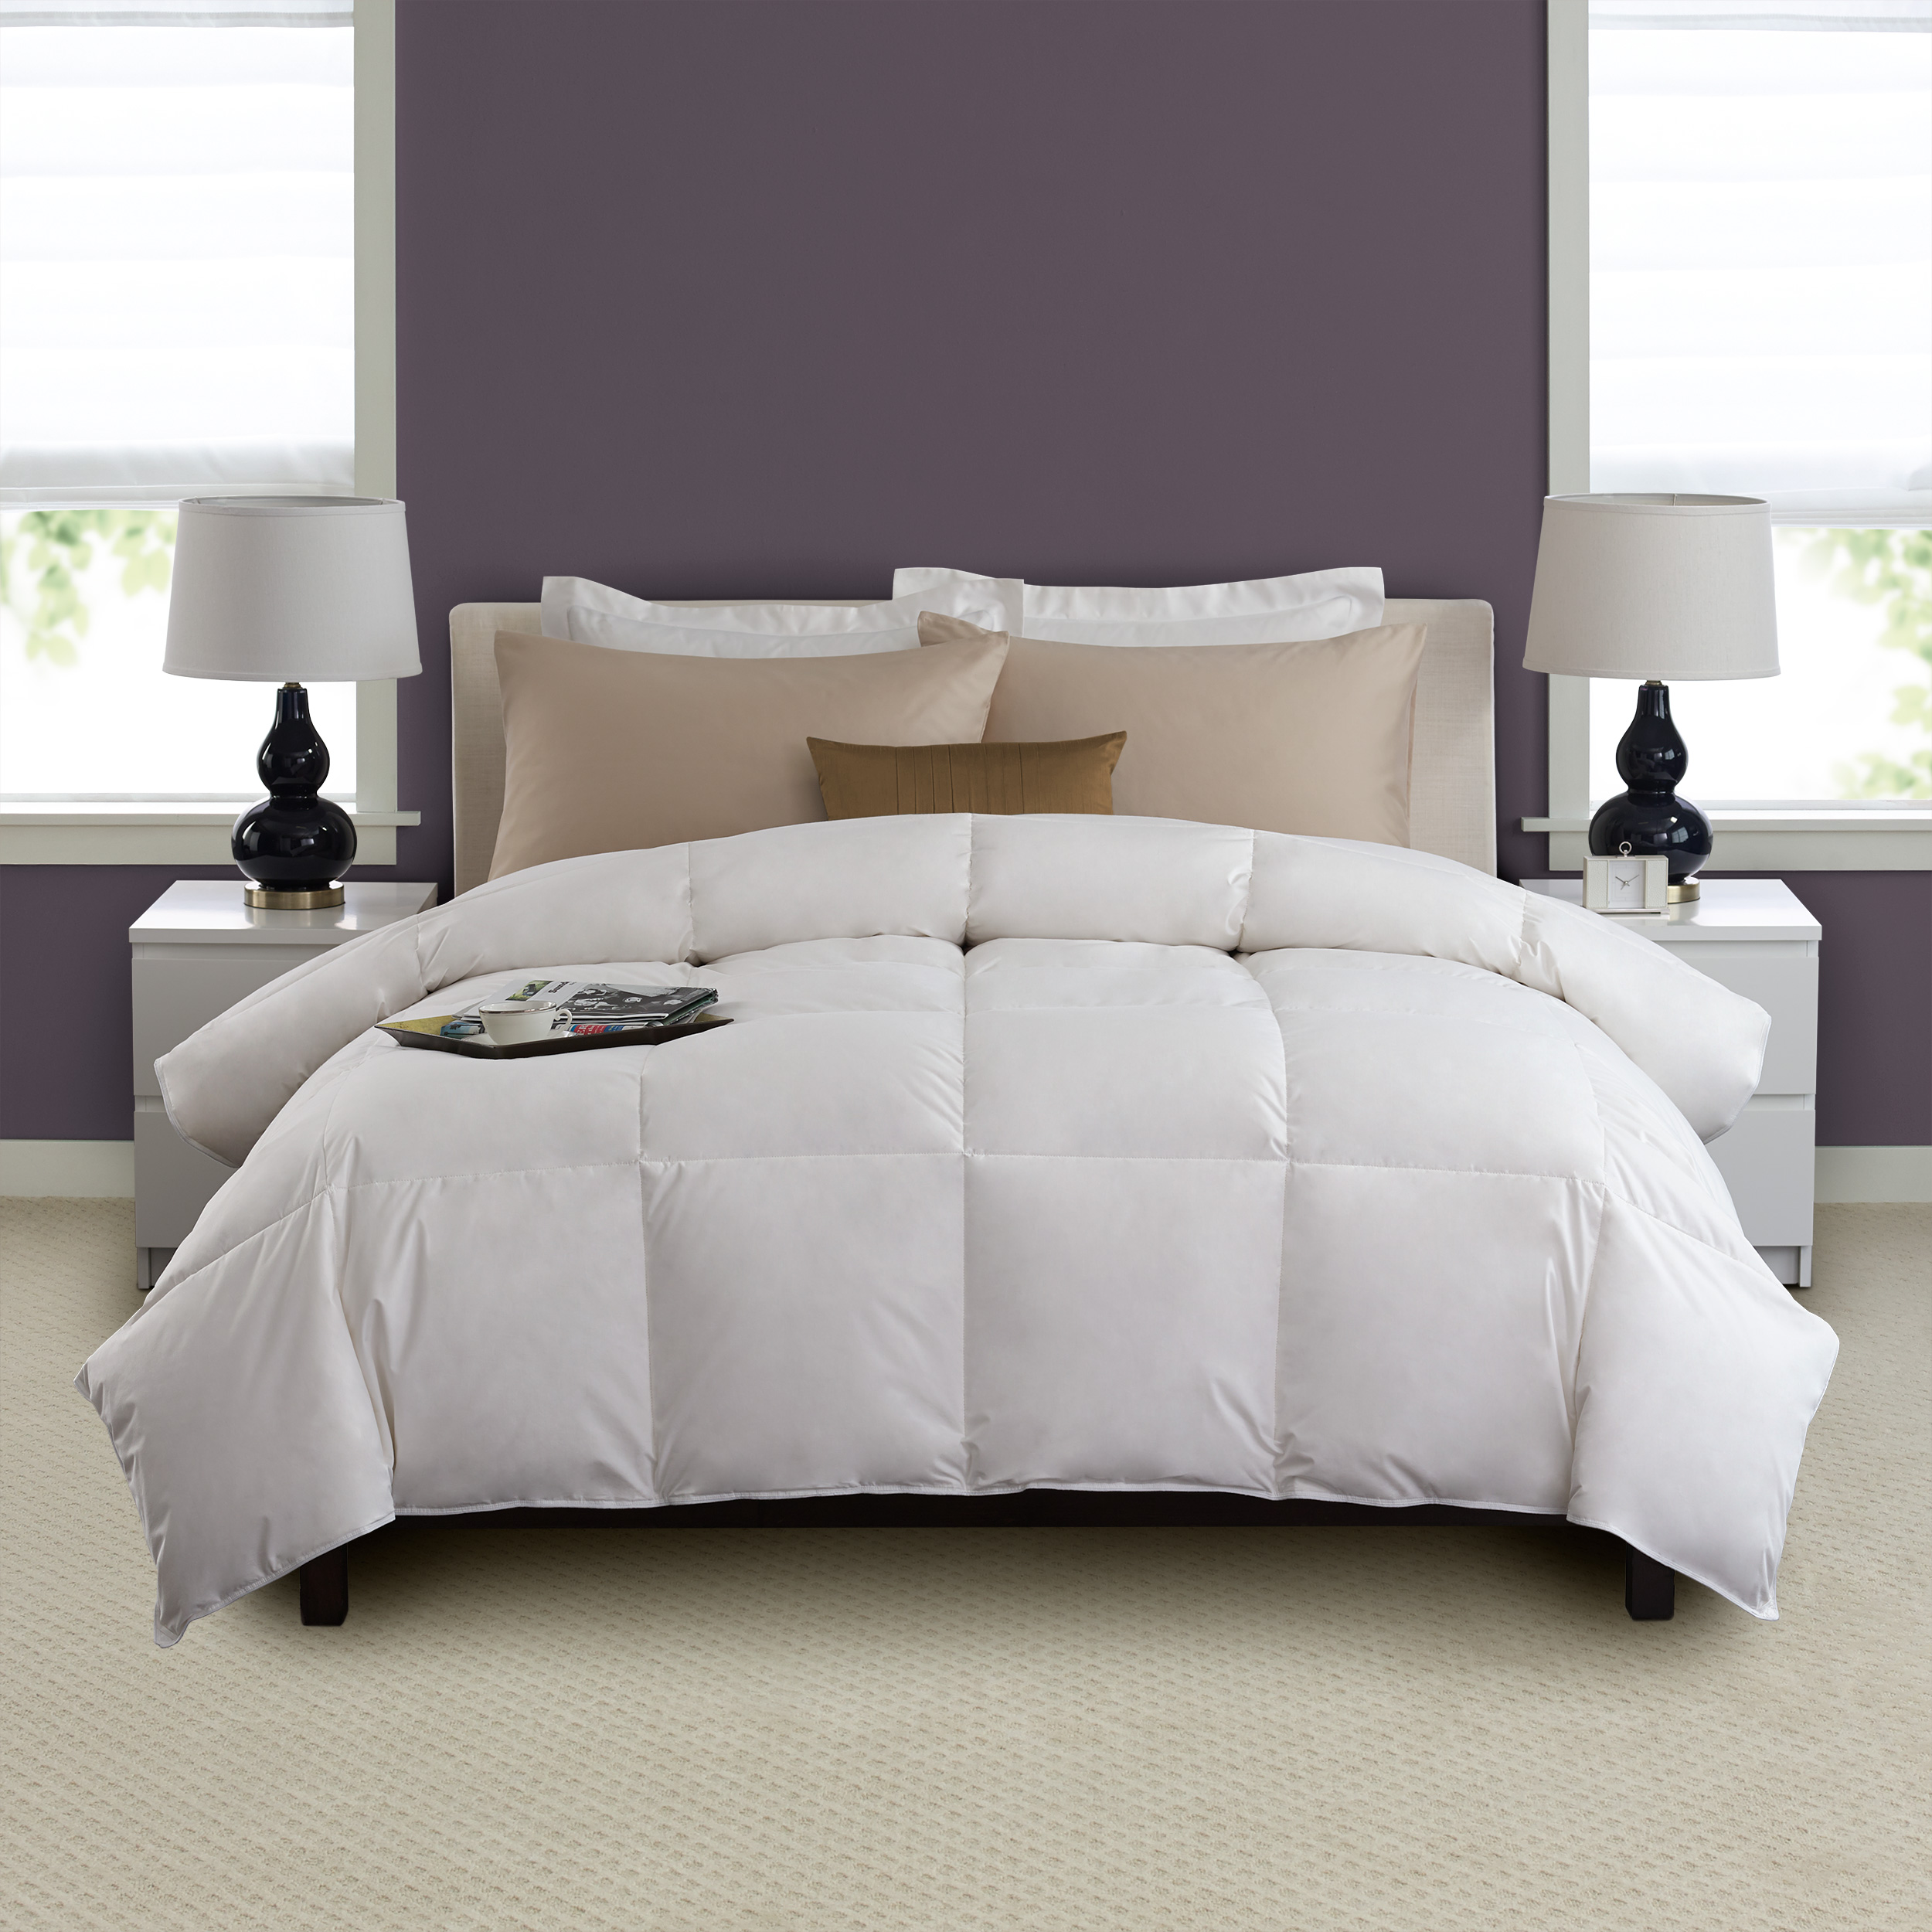 Shop Hotel Collection Down Comforter